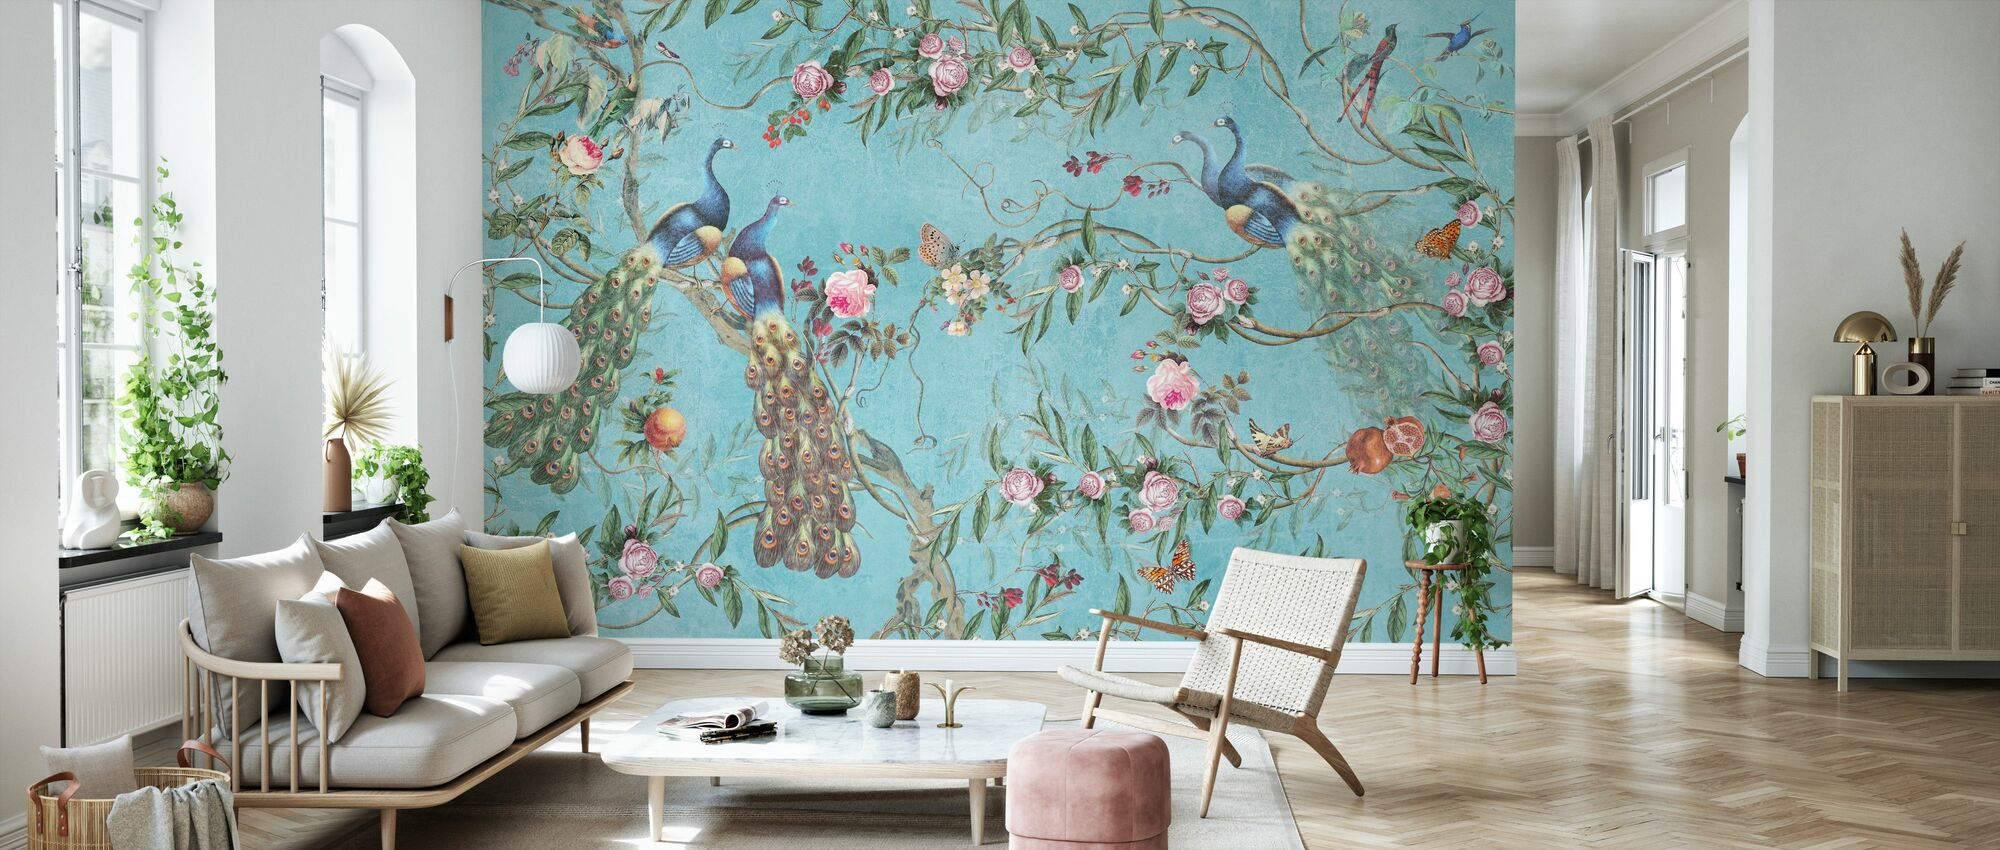 Peacocks and Flowers - Wallpaper - Living Room